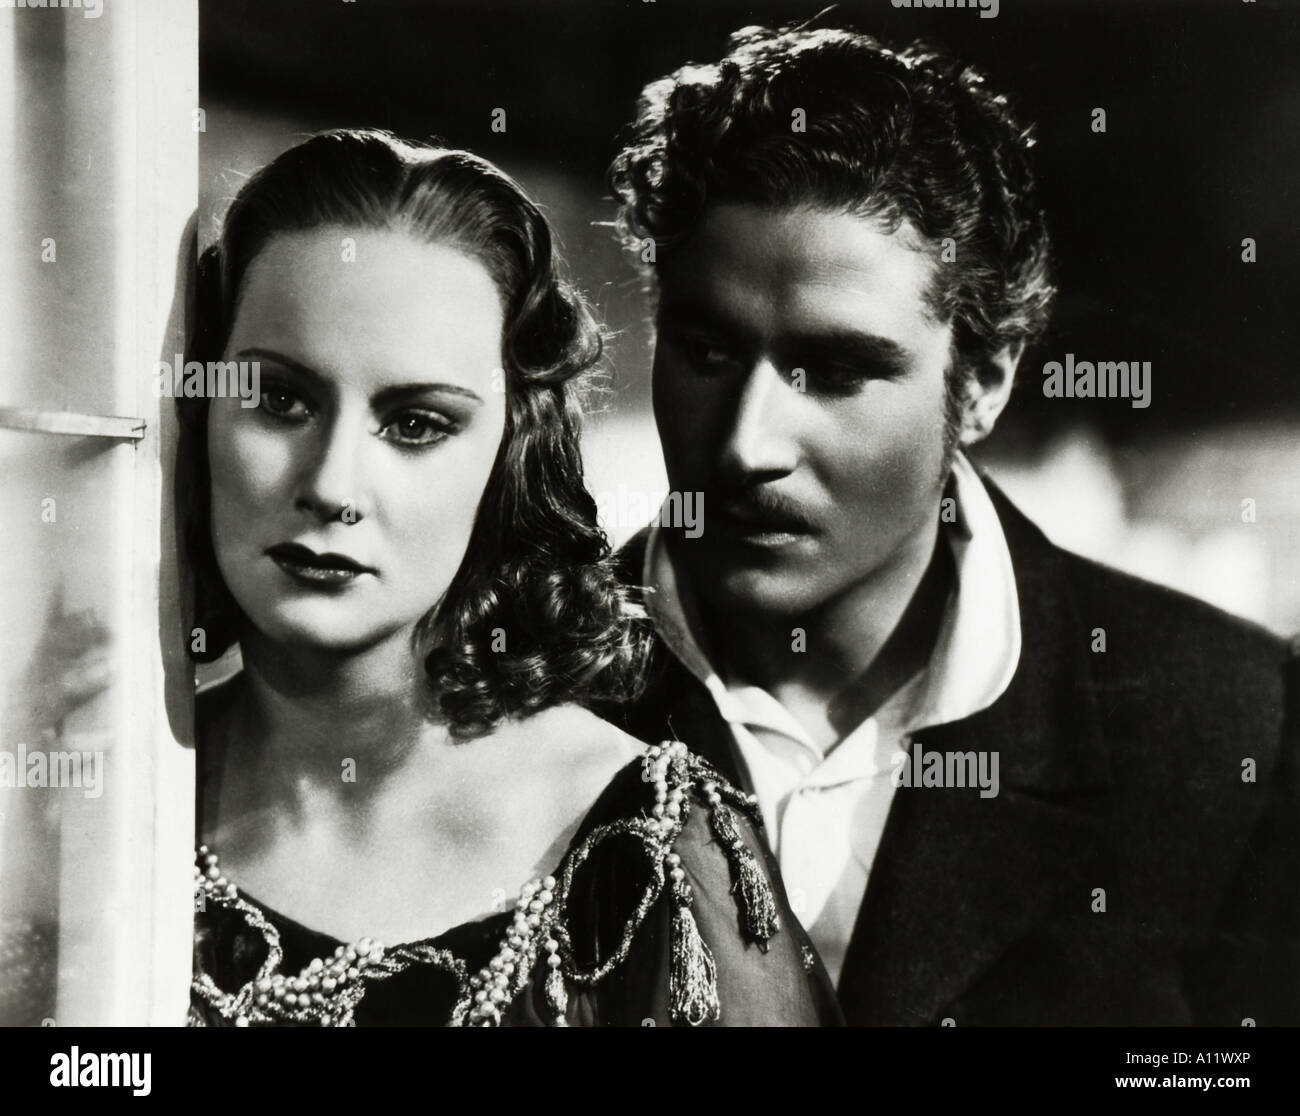 stendhal stock photos stendhal stock images alamy oltre l amore year 1940 director carmine gallone alida valli amedeo nazzari based upon stendhal s